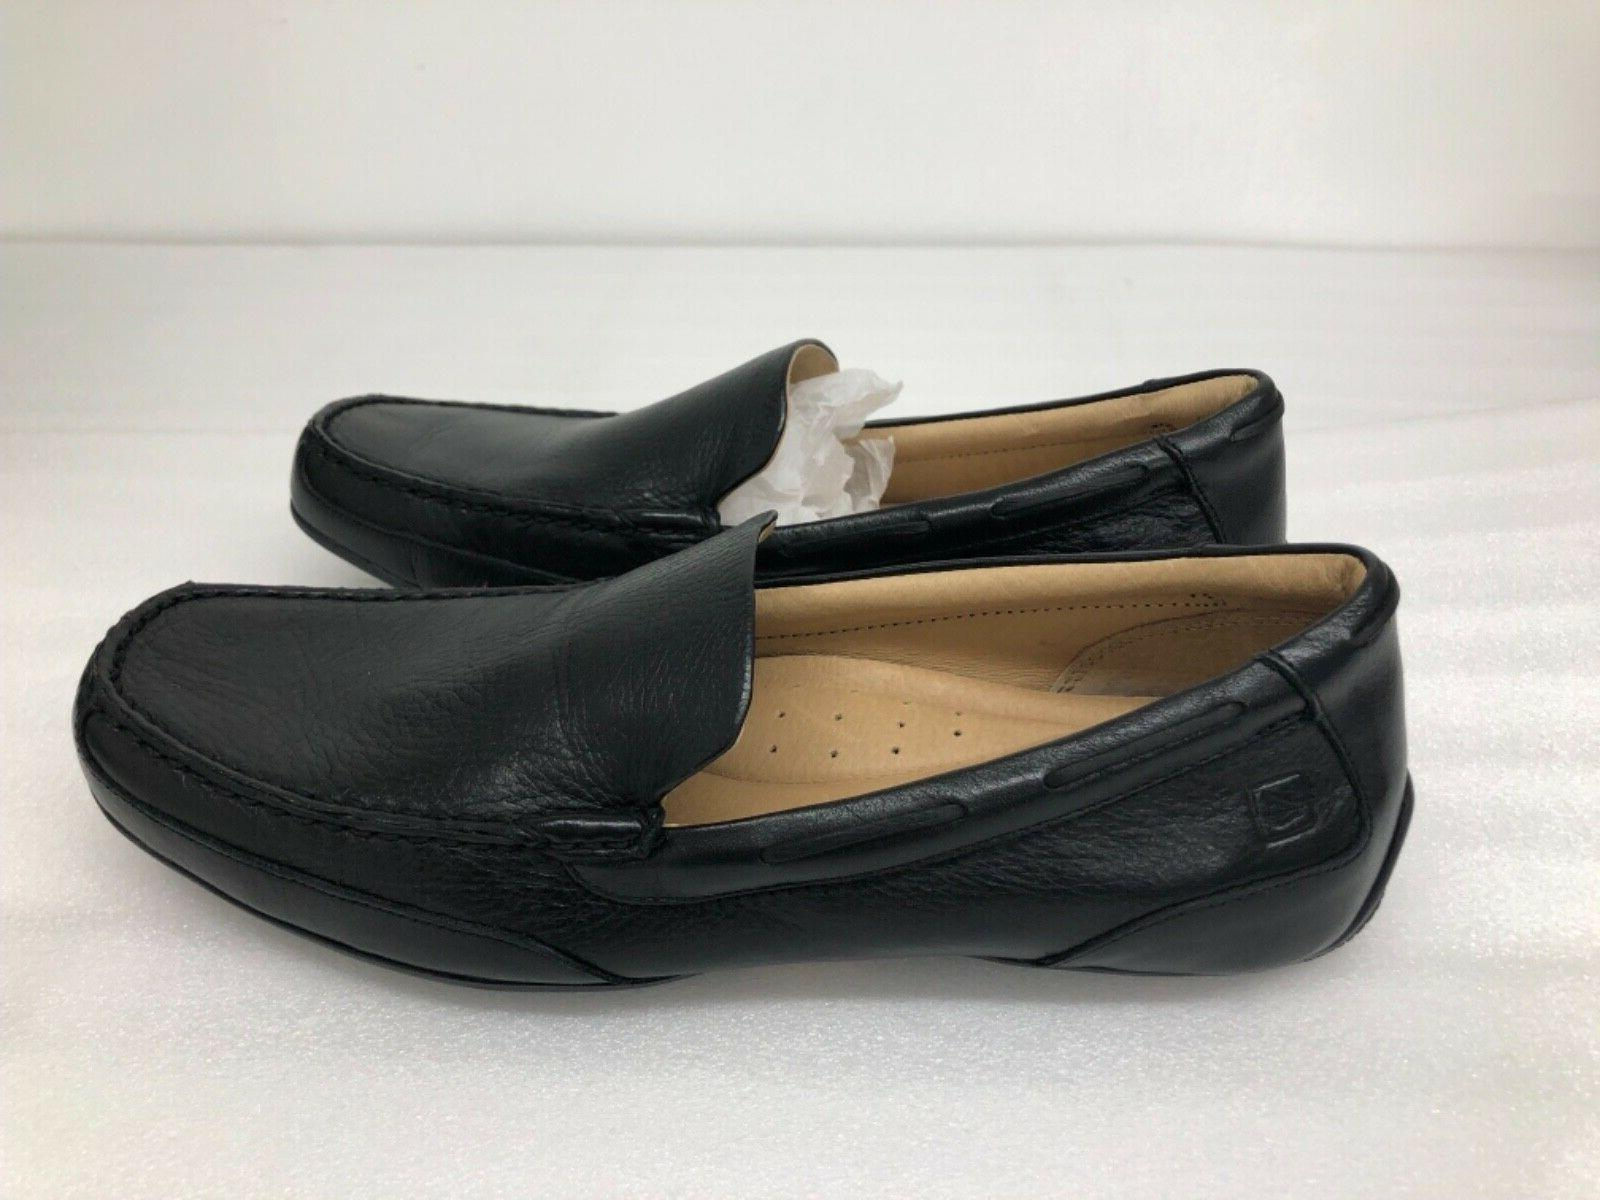 Sperry Venetian $90 Loafer Size Black Leather